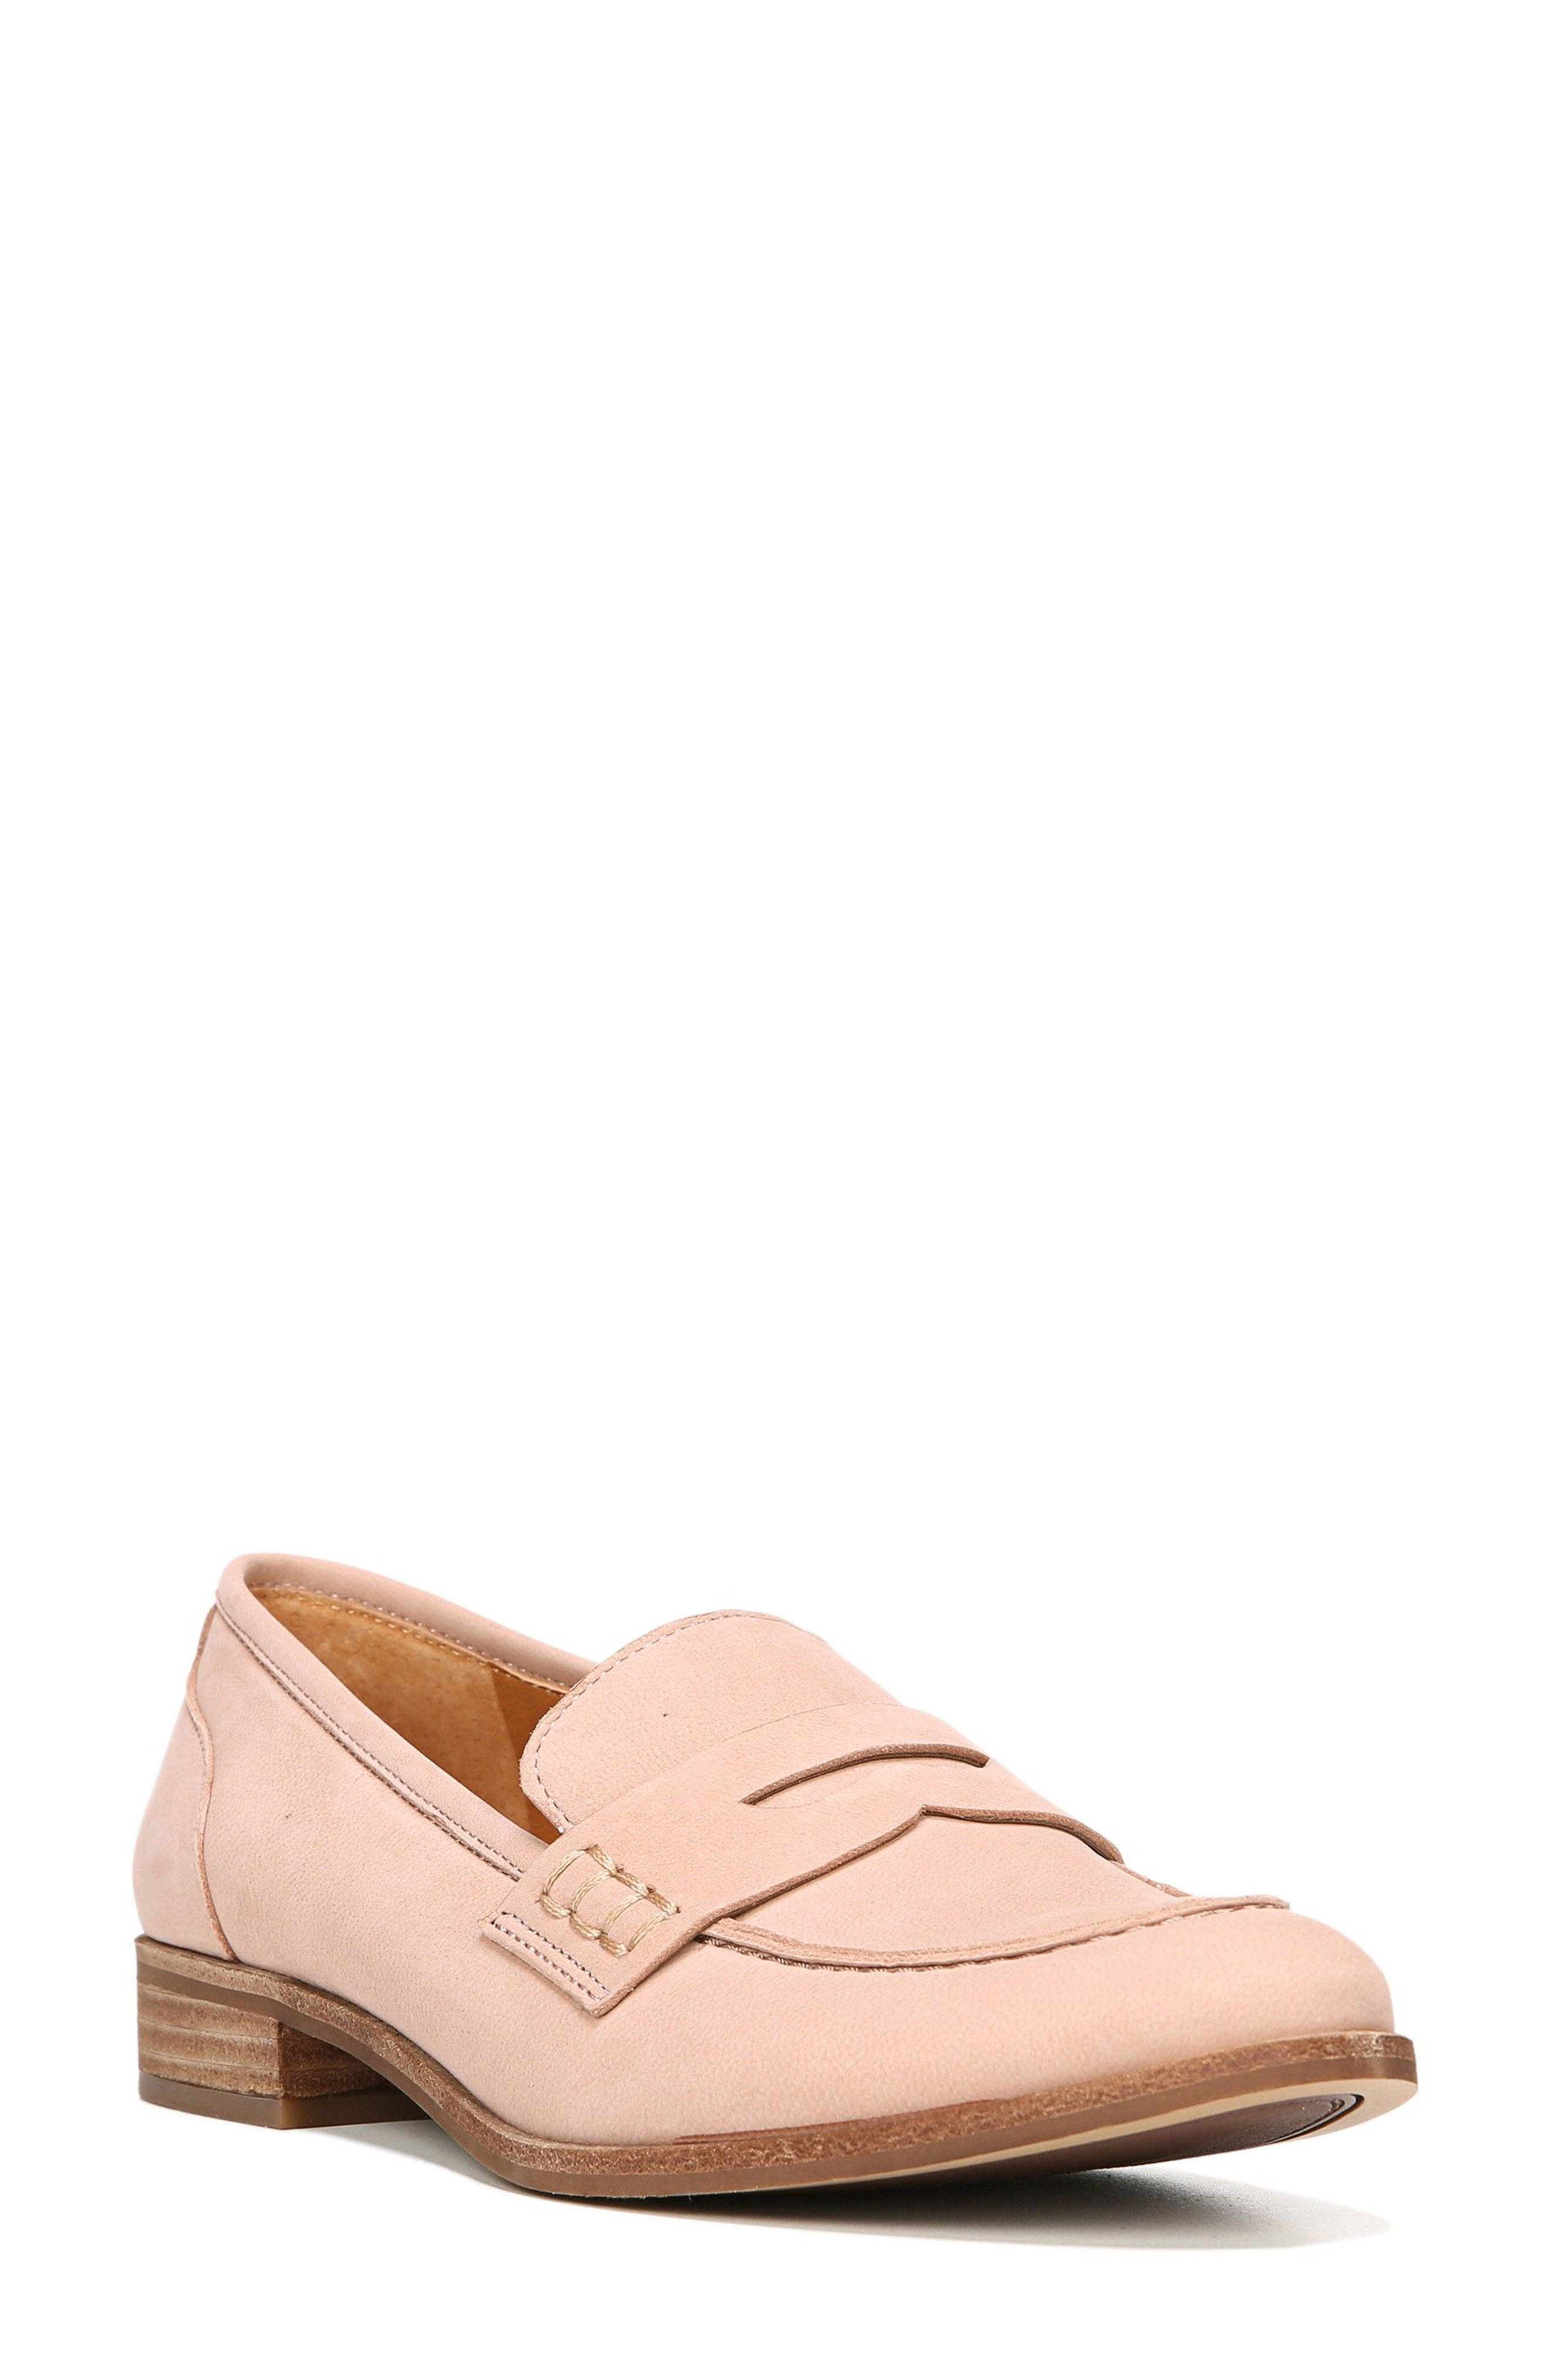 'Jolette' Penny Loafer,                             Main thumbnail 23, color,